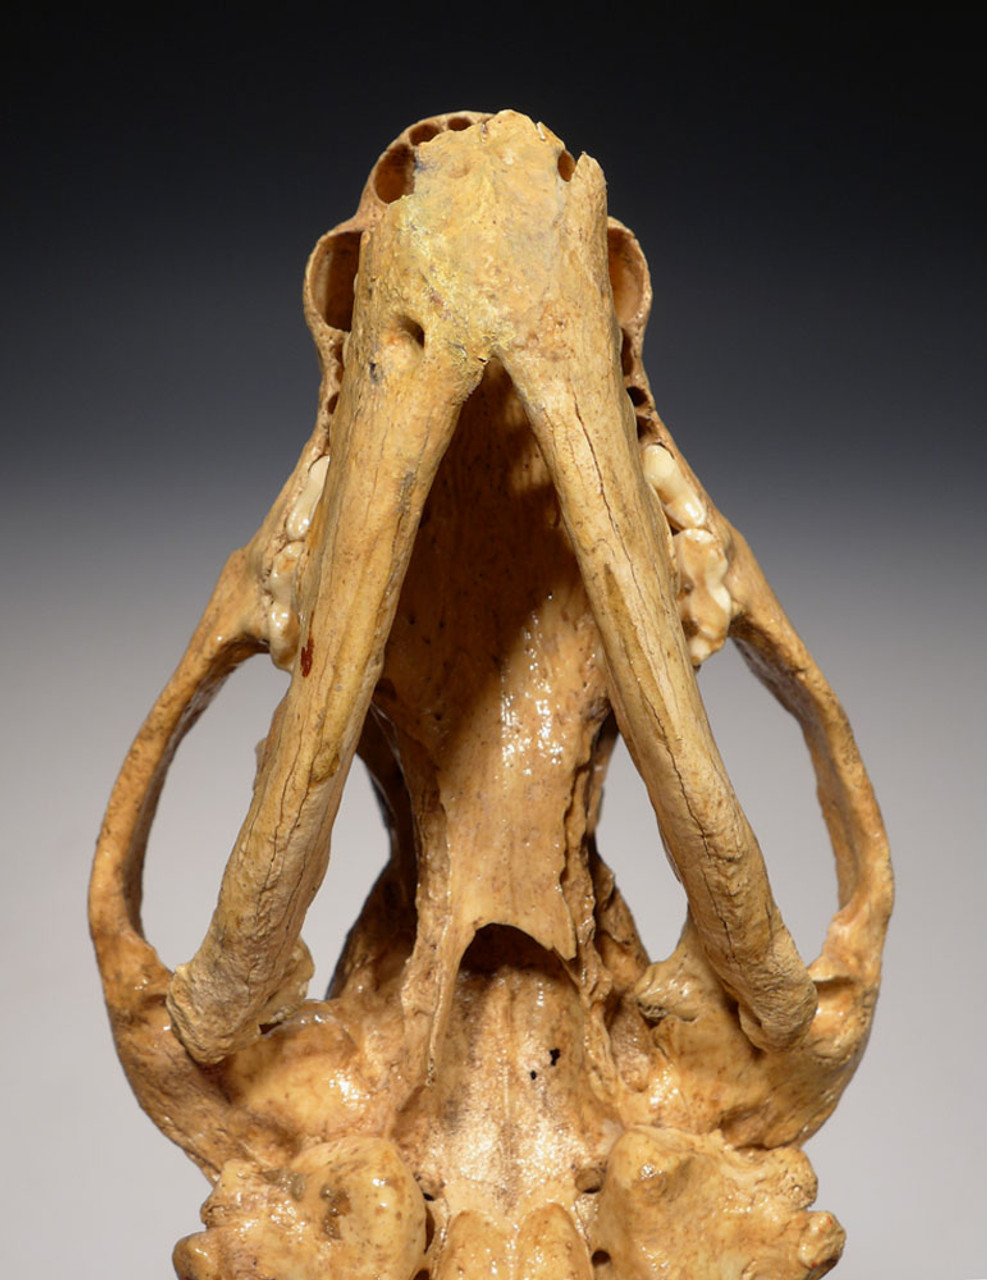 LMX183 - ULTRA-RARE ICE AGE FOSSIL BADGER SKULL WITH ORIGINAL MANDIBLE FOUND IN BELGIAN CAVE